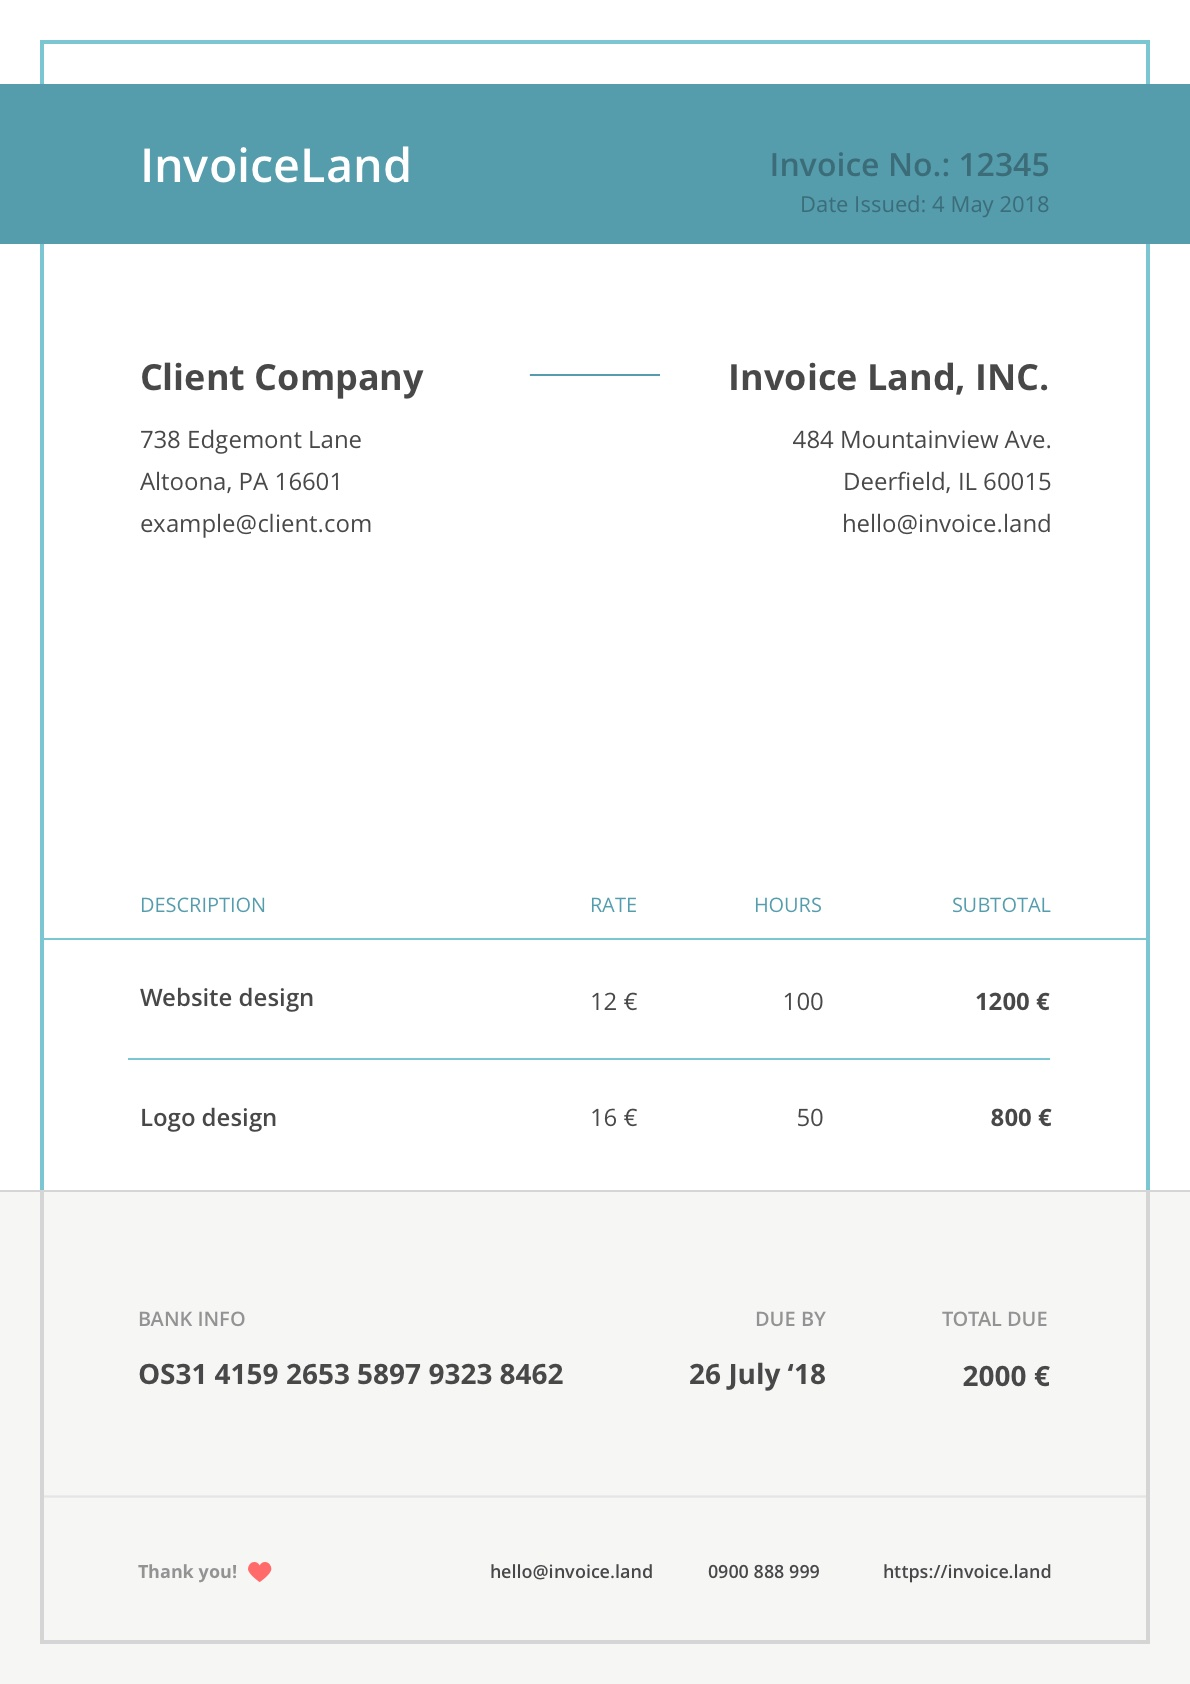 Premium Invoice Templates For Freelancers And Small Businesses Invoice Land